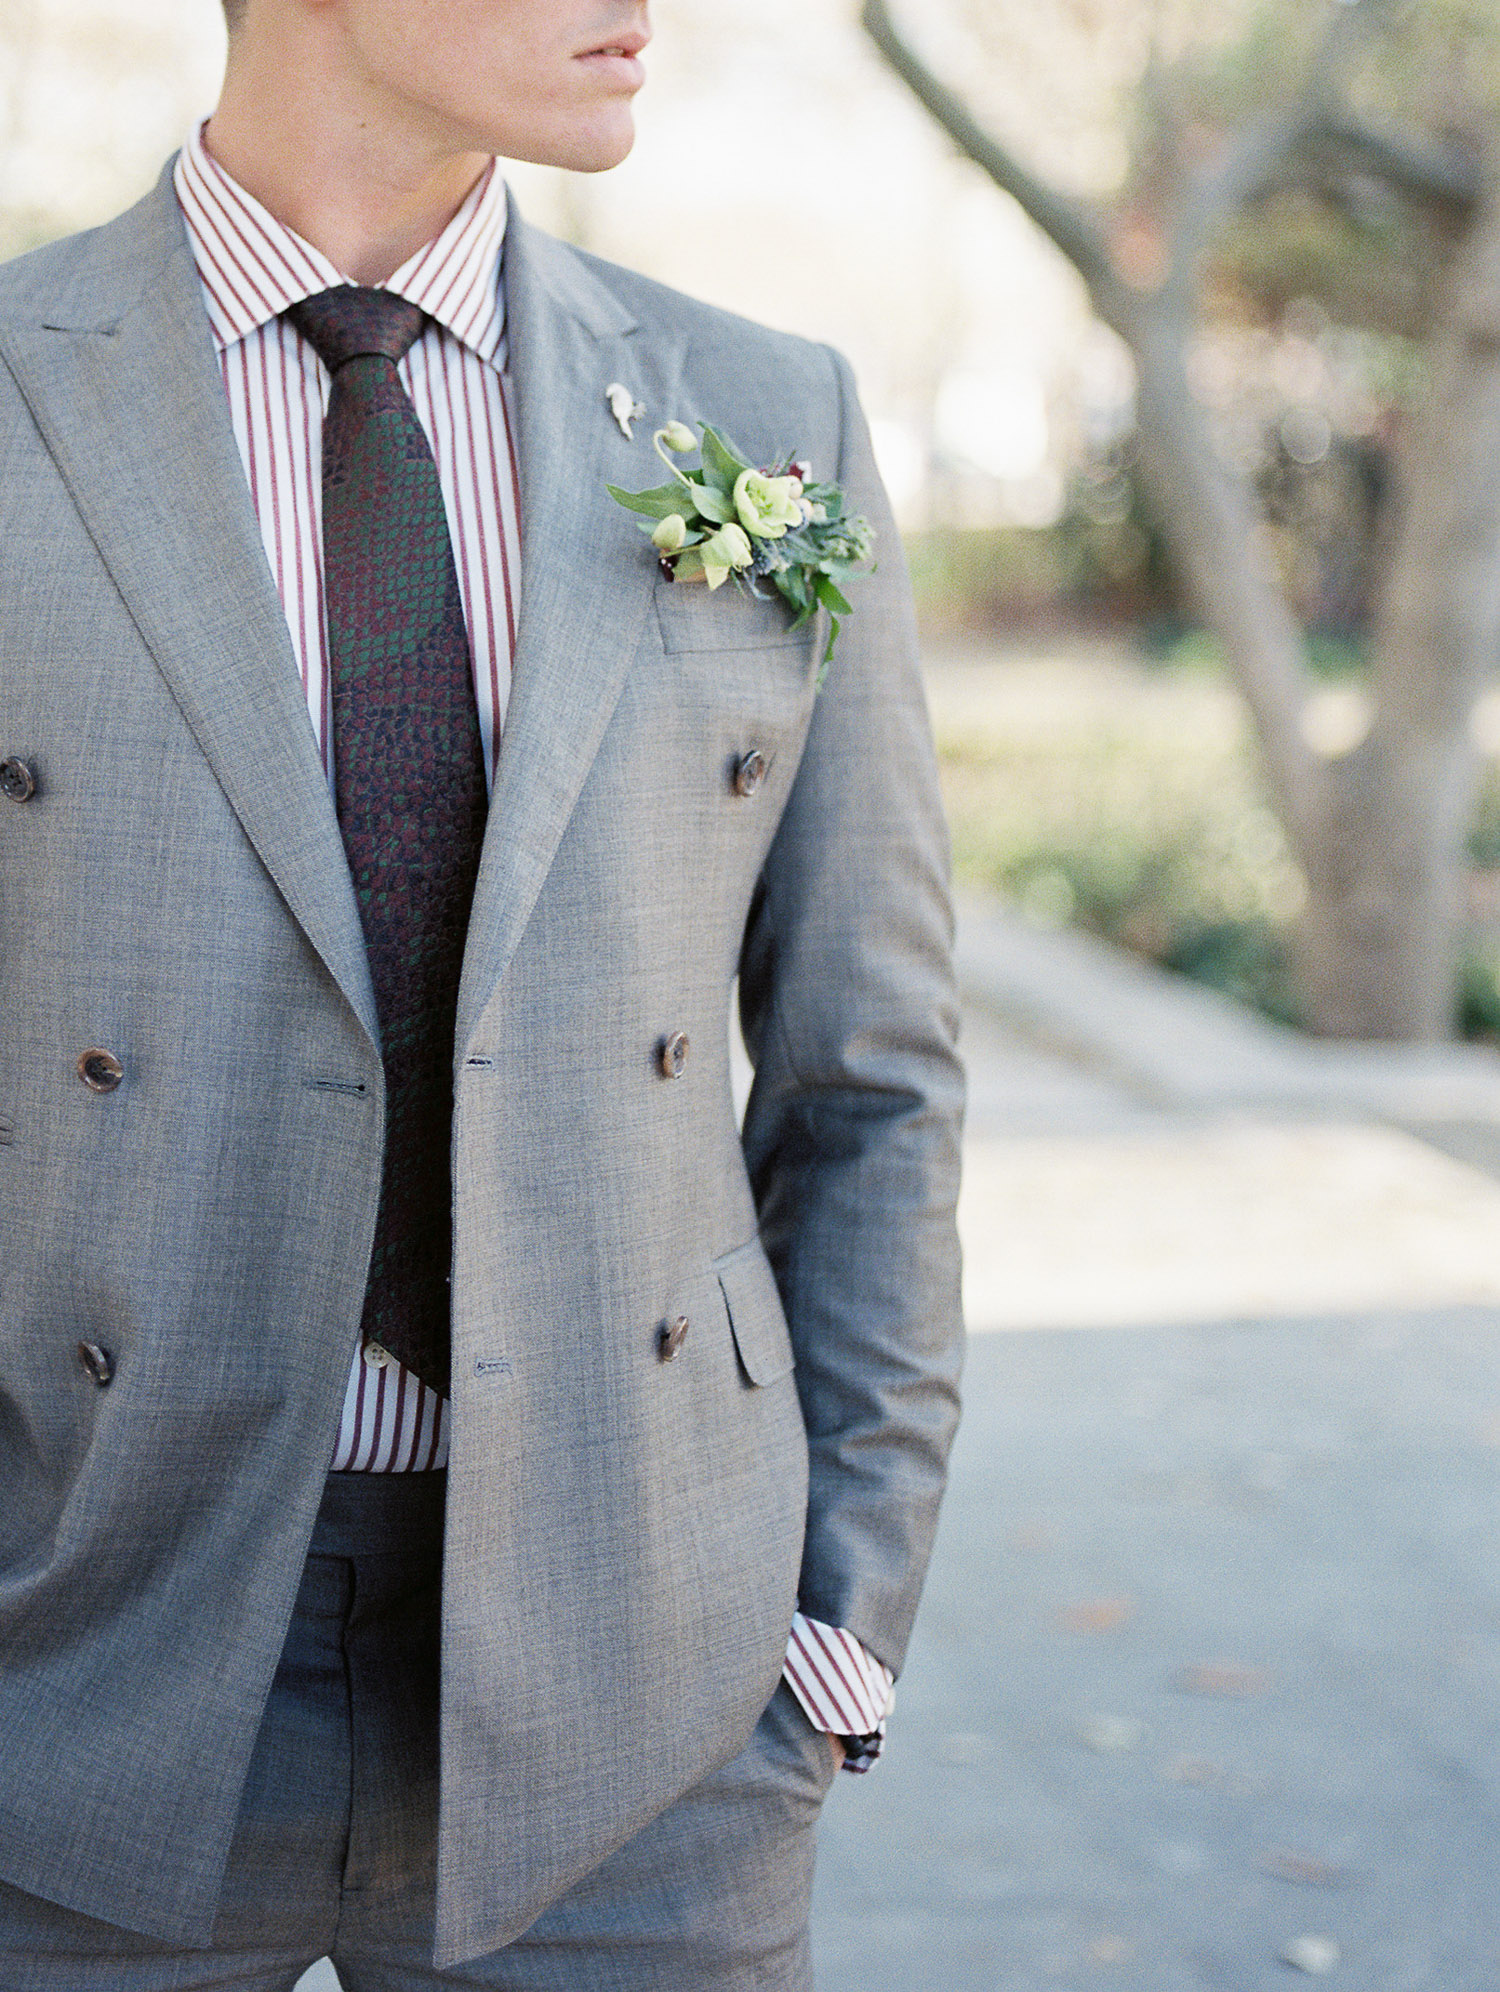 Enchanting Build Your Own Tuxedos Wedding Component - All Wedding ...